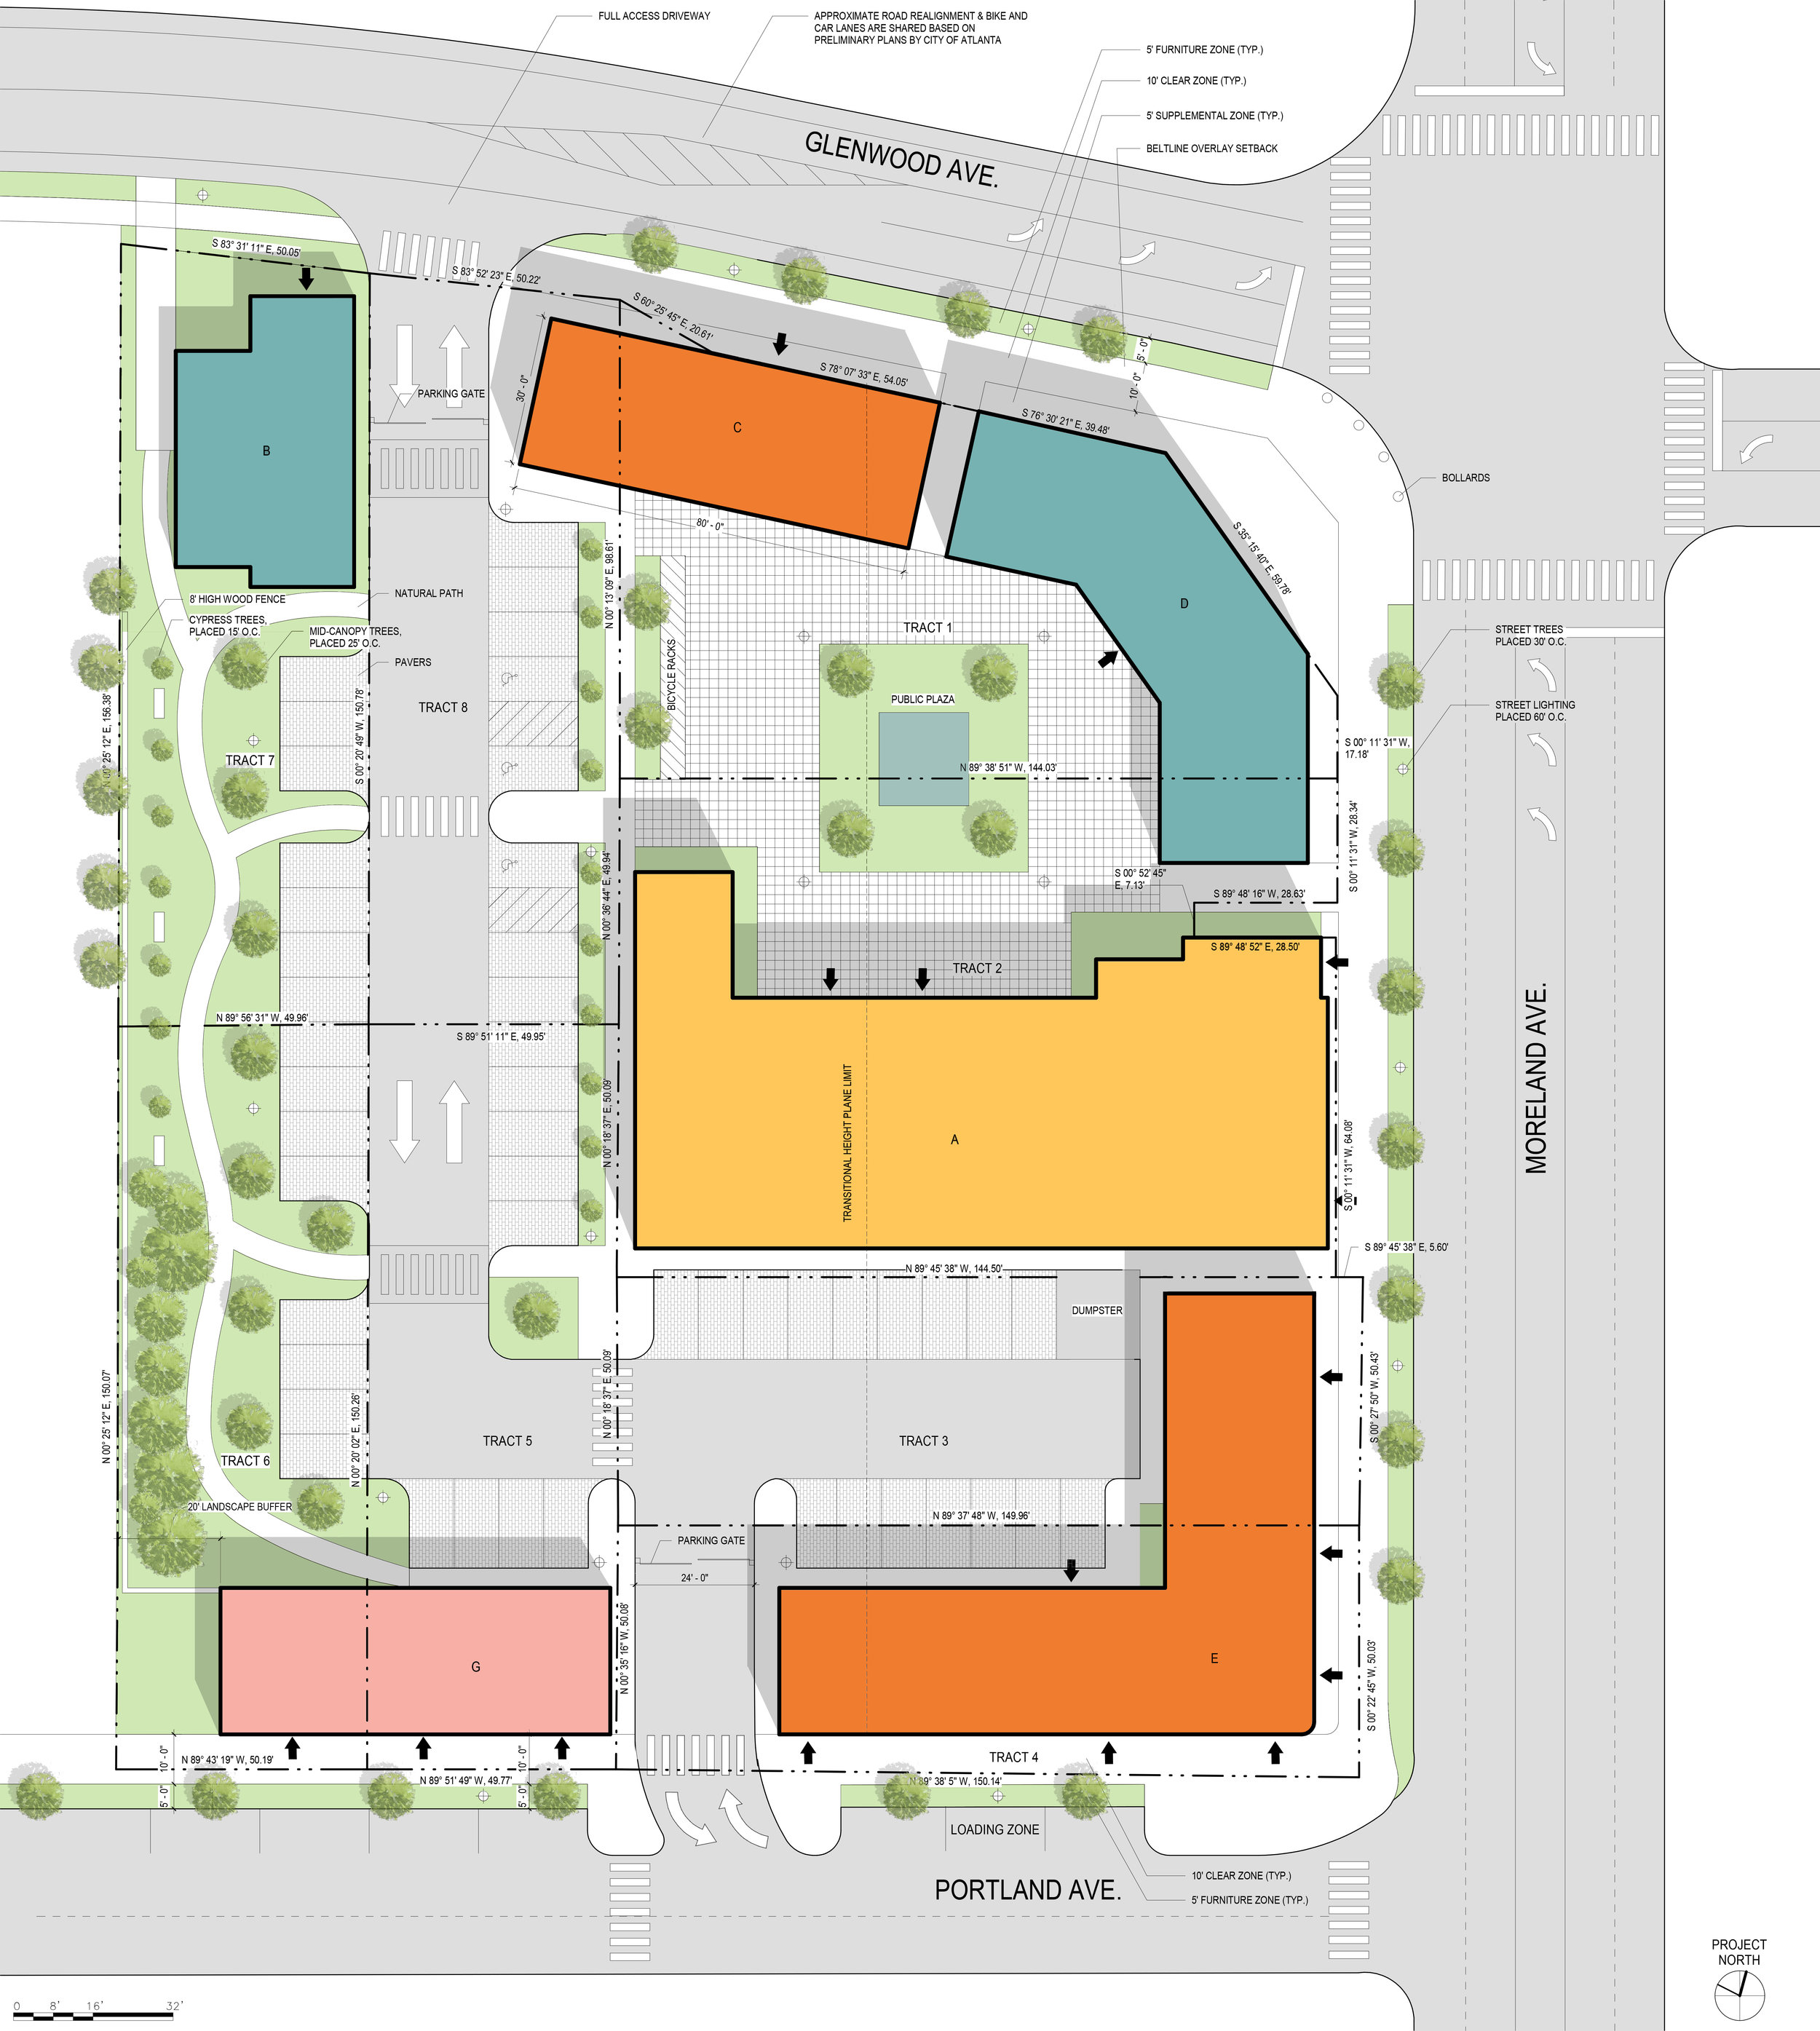 SITE PLAN-COLORED2.07.19.jpg